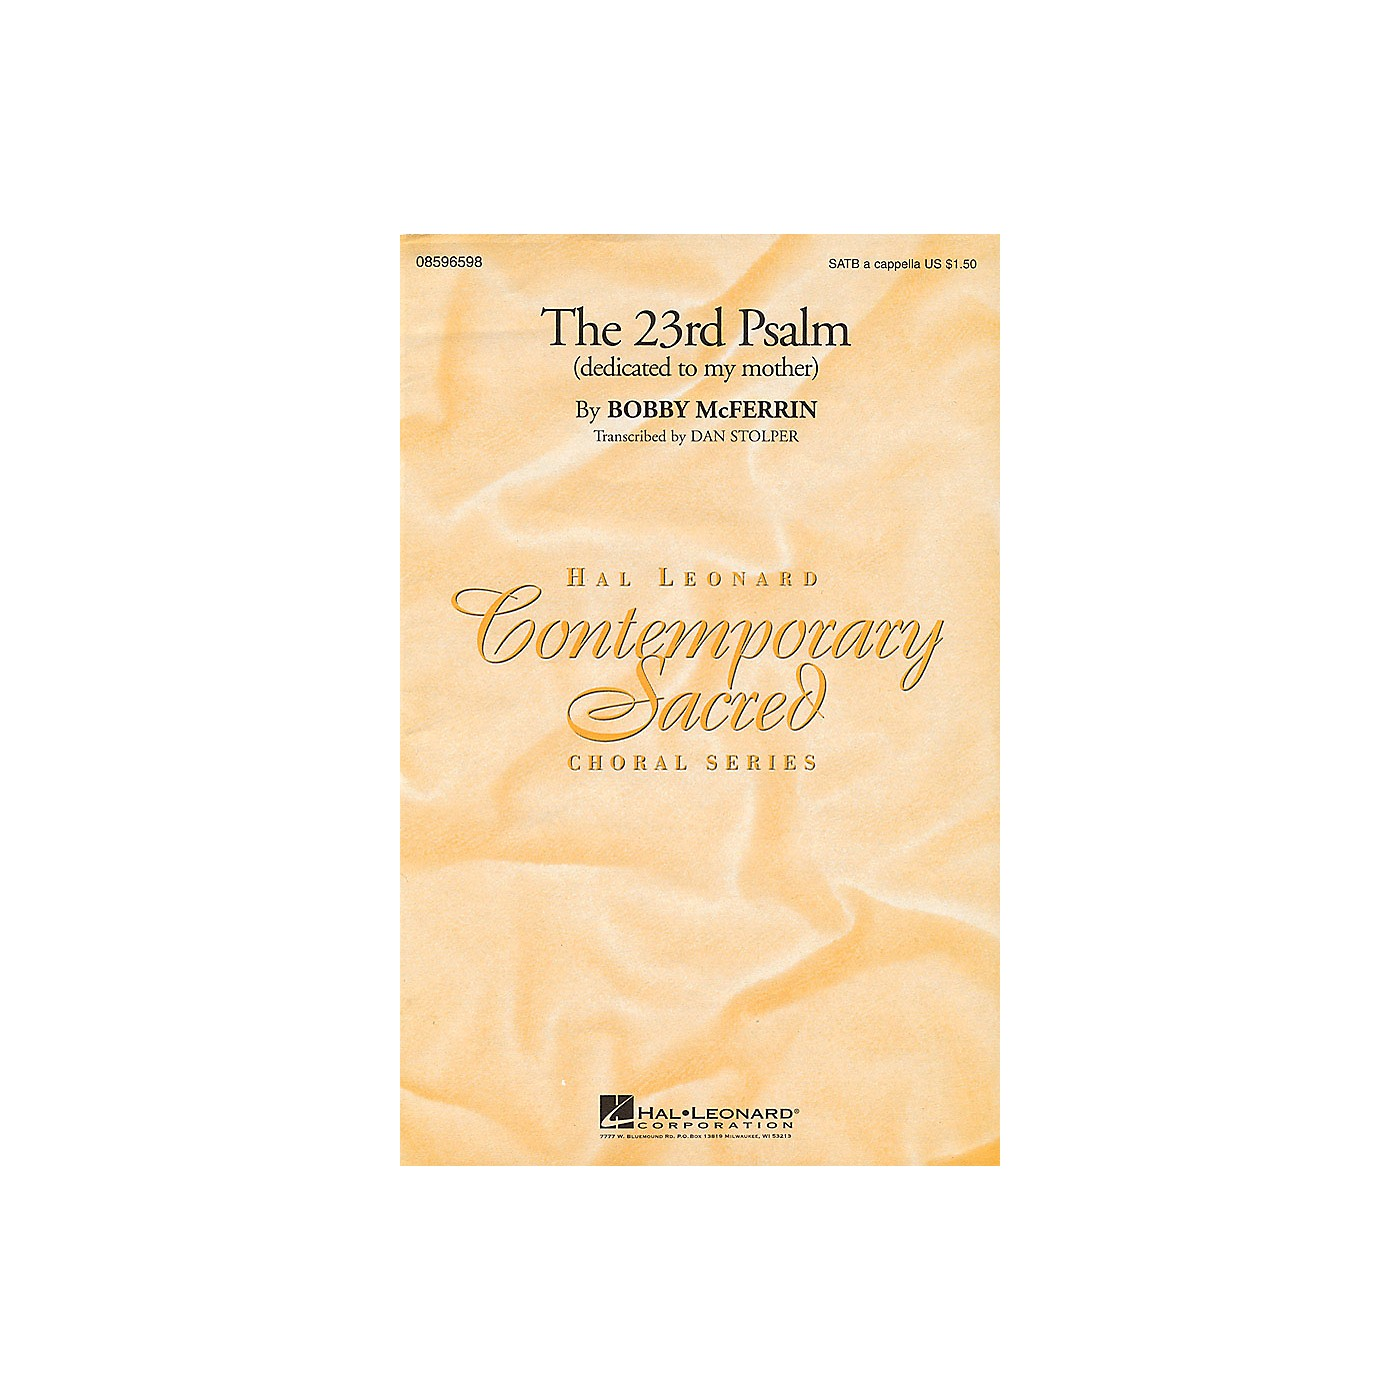 Hal Leonard The 23rd Psalm (dedicated to my mother) SATB by Bobby McFerrin composed by Bobby McFerrin thumbnail